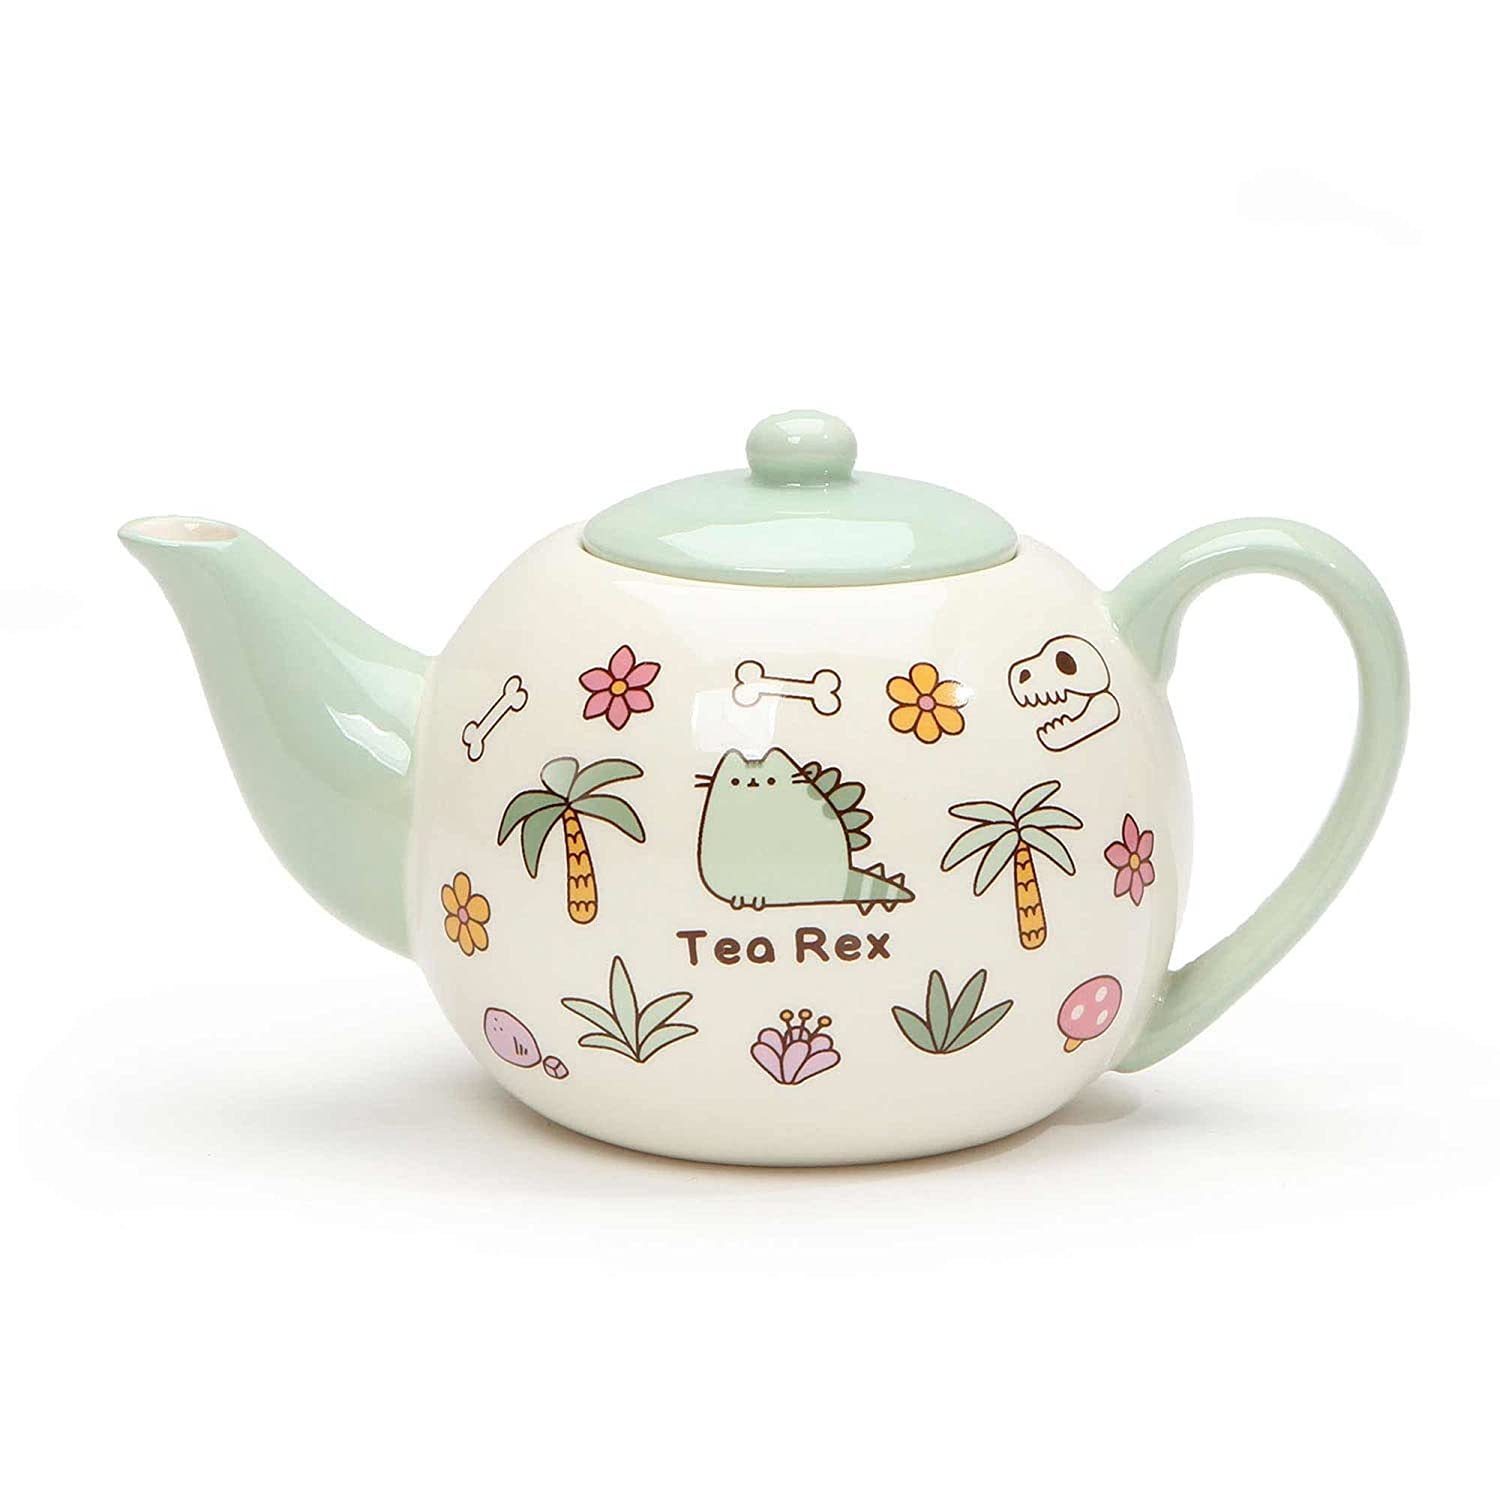 """Pusheen by Our Name is Mud """"Pusheen Tea Rex"""" Stoneware Teapot, 4.25 Inches"""